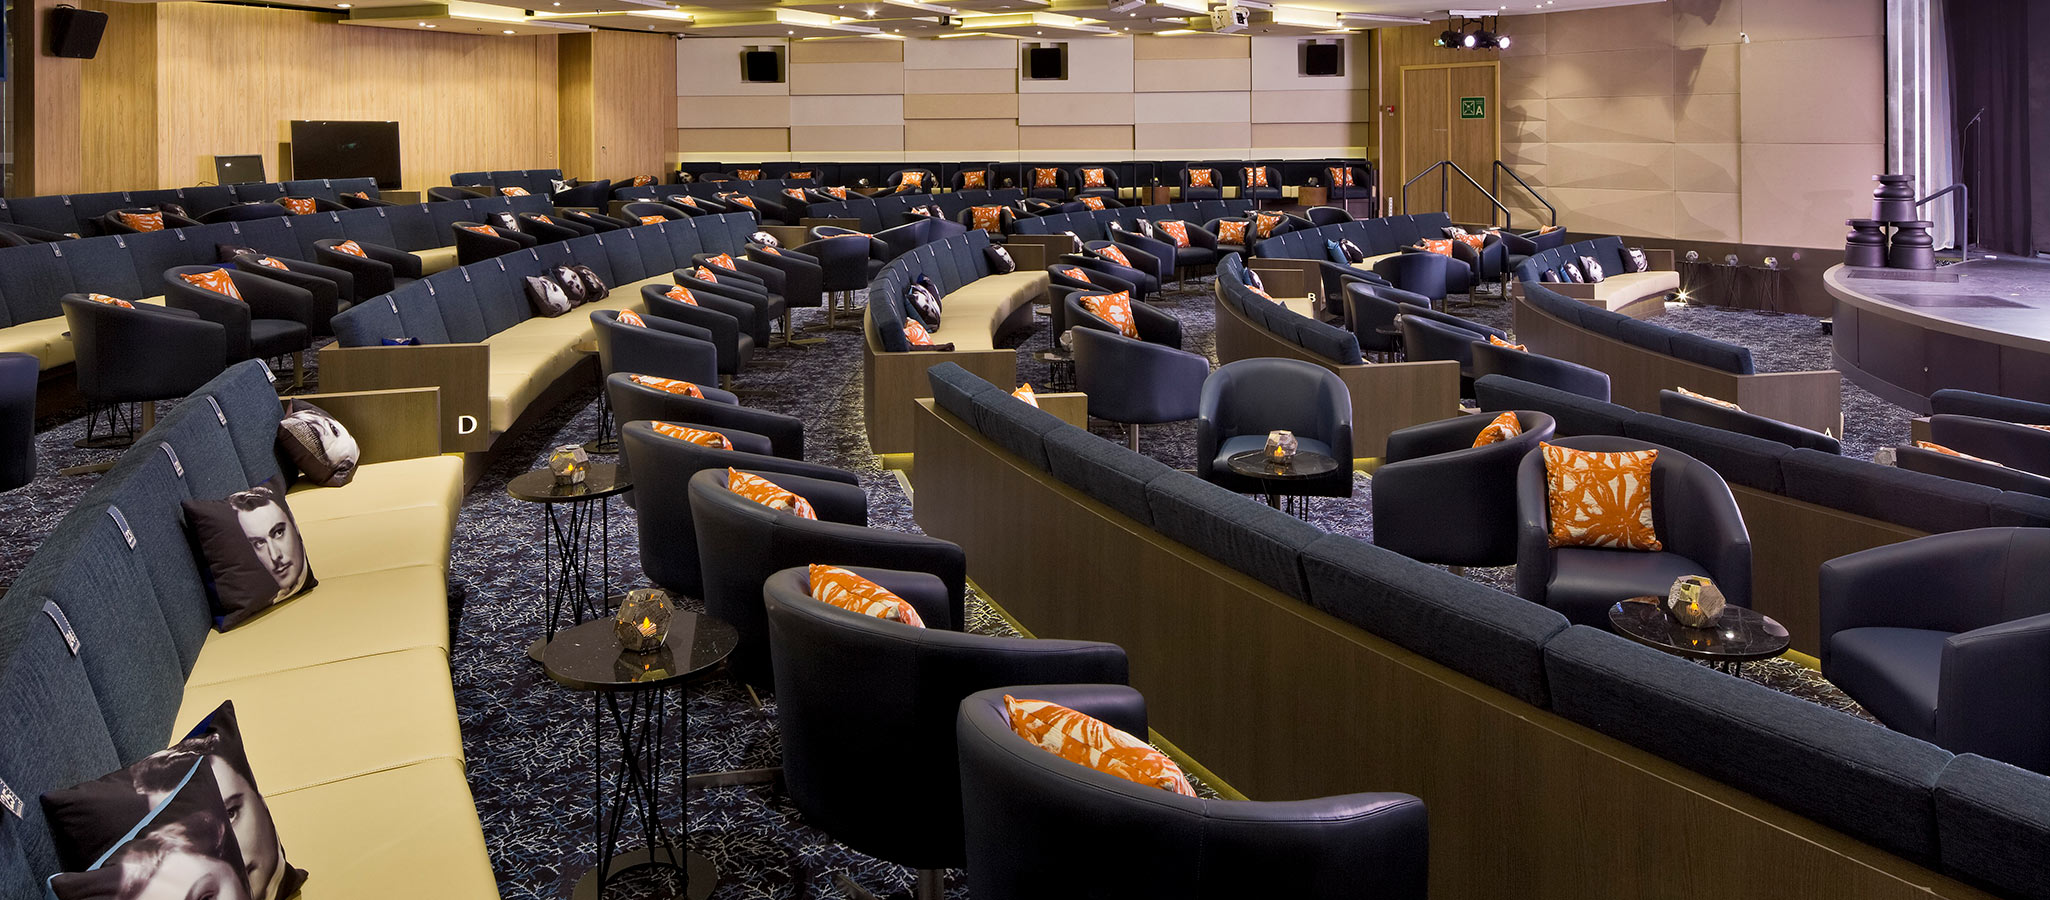 The conference facilities on board are excellent – both in terms of space and technology.